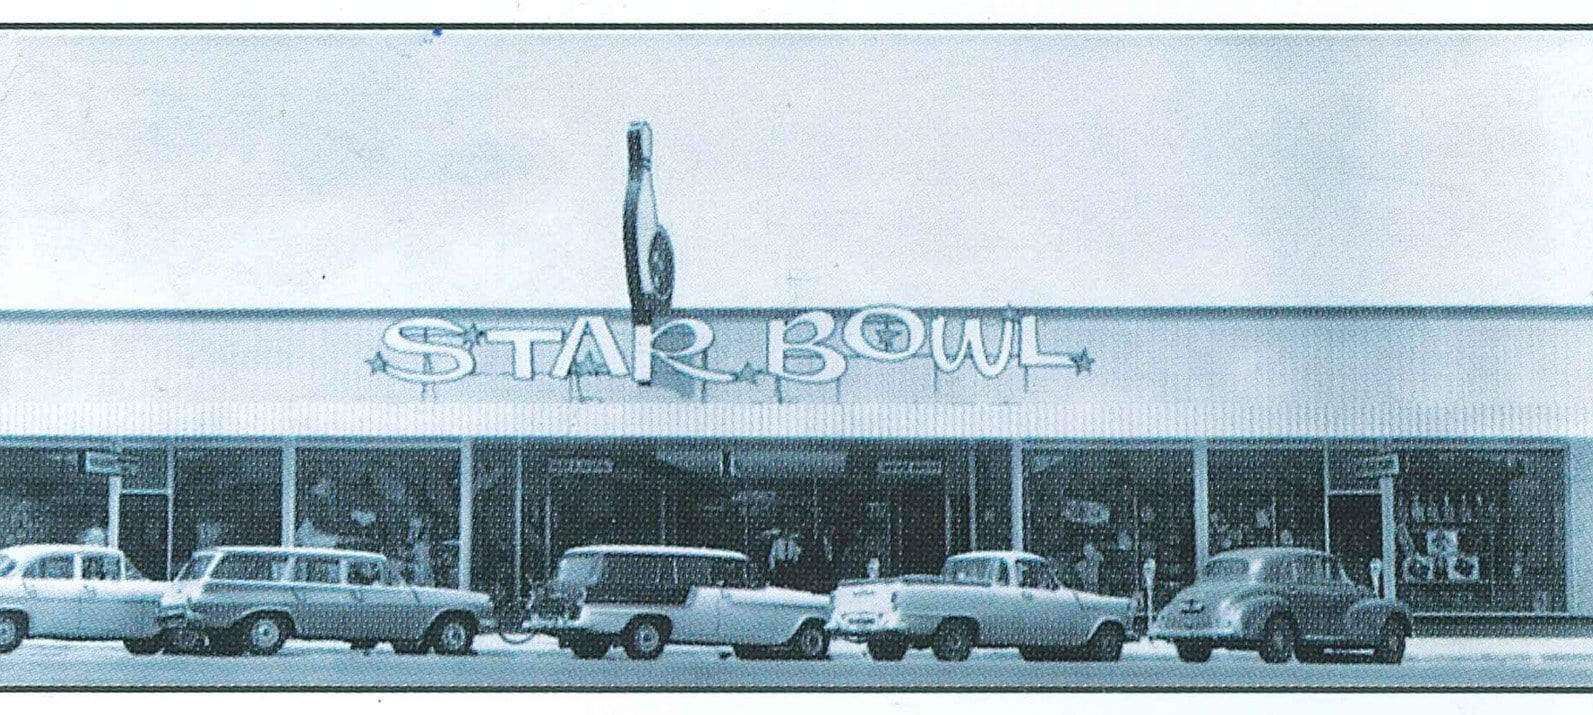 https://www.mbmgroup.com.au/wp-content/uploads/2016/10/Star-Bowl.jpg